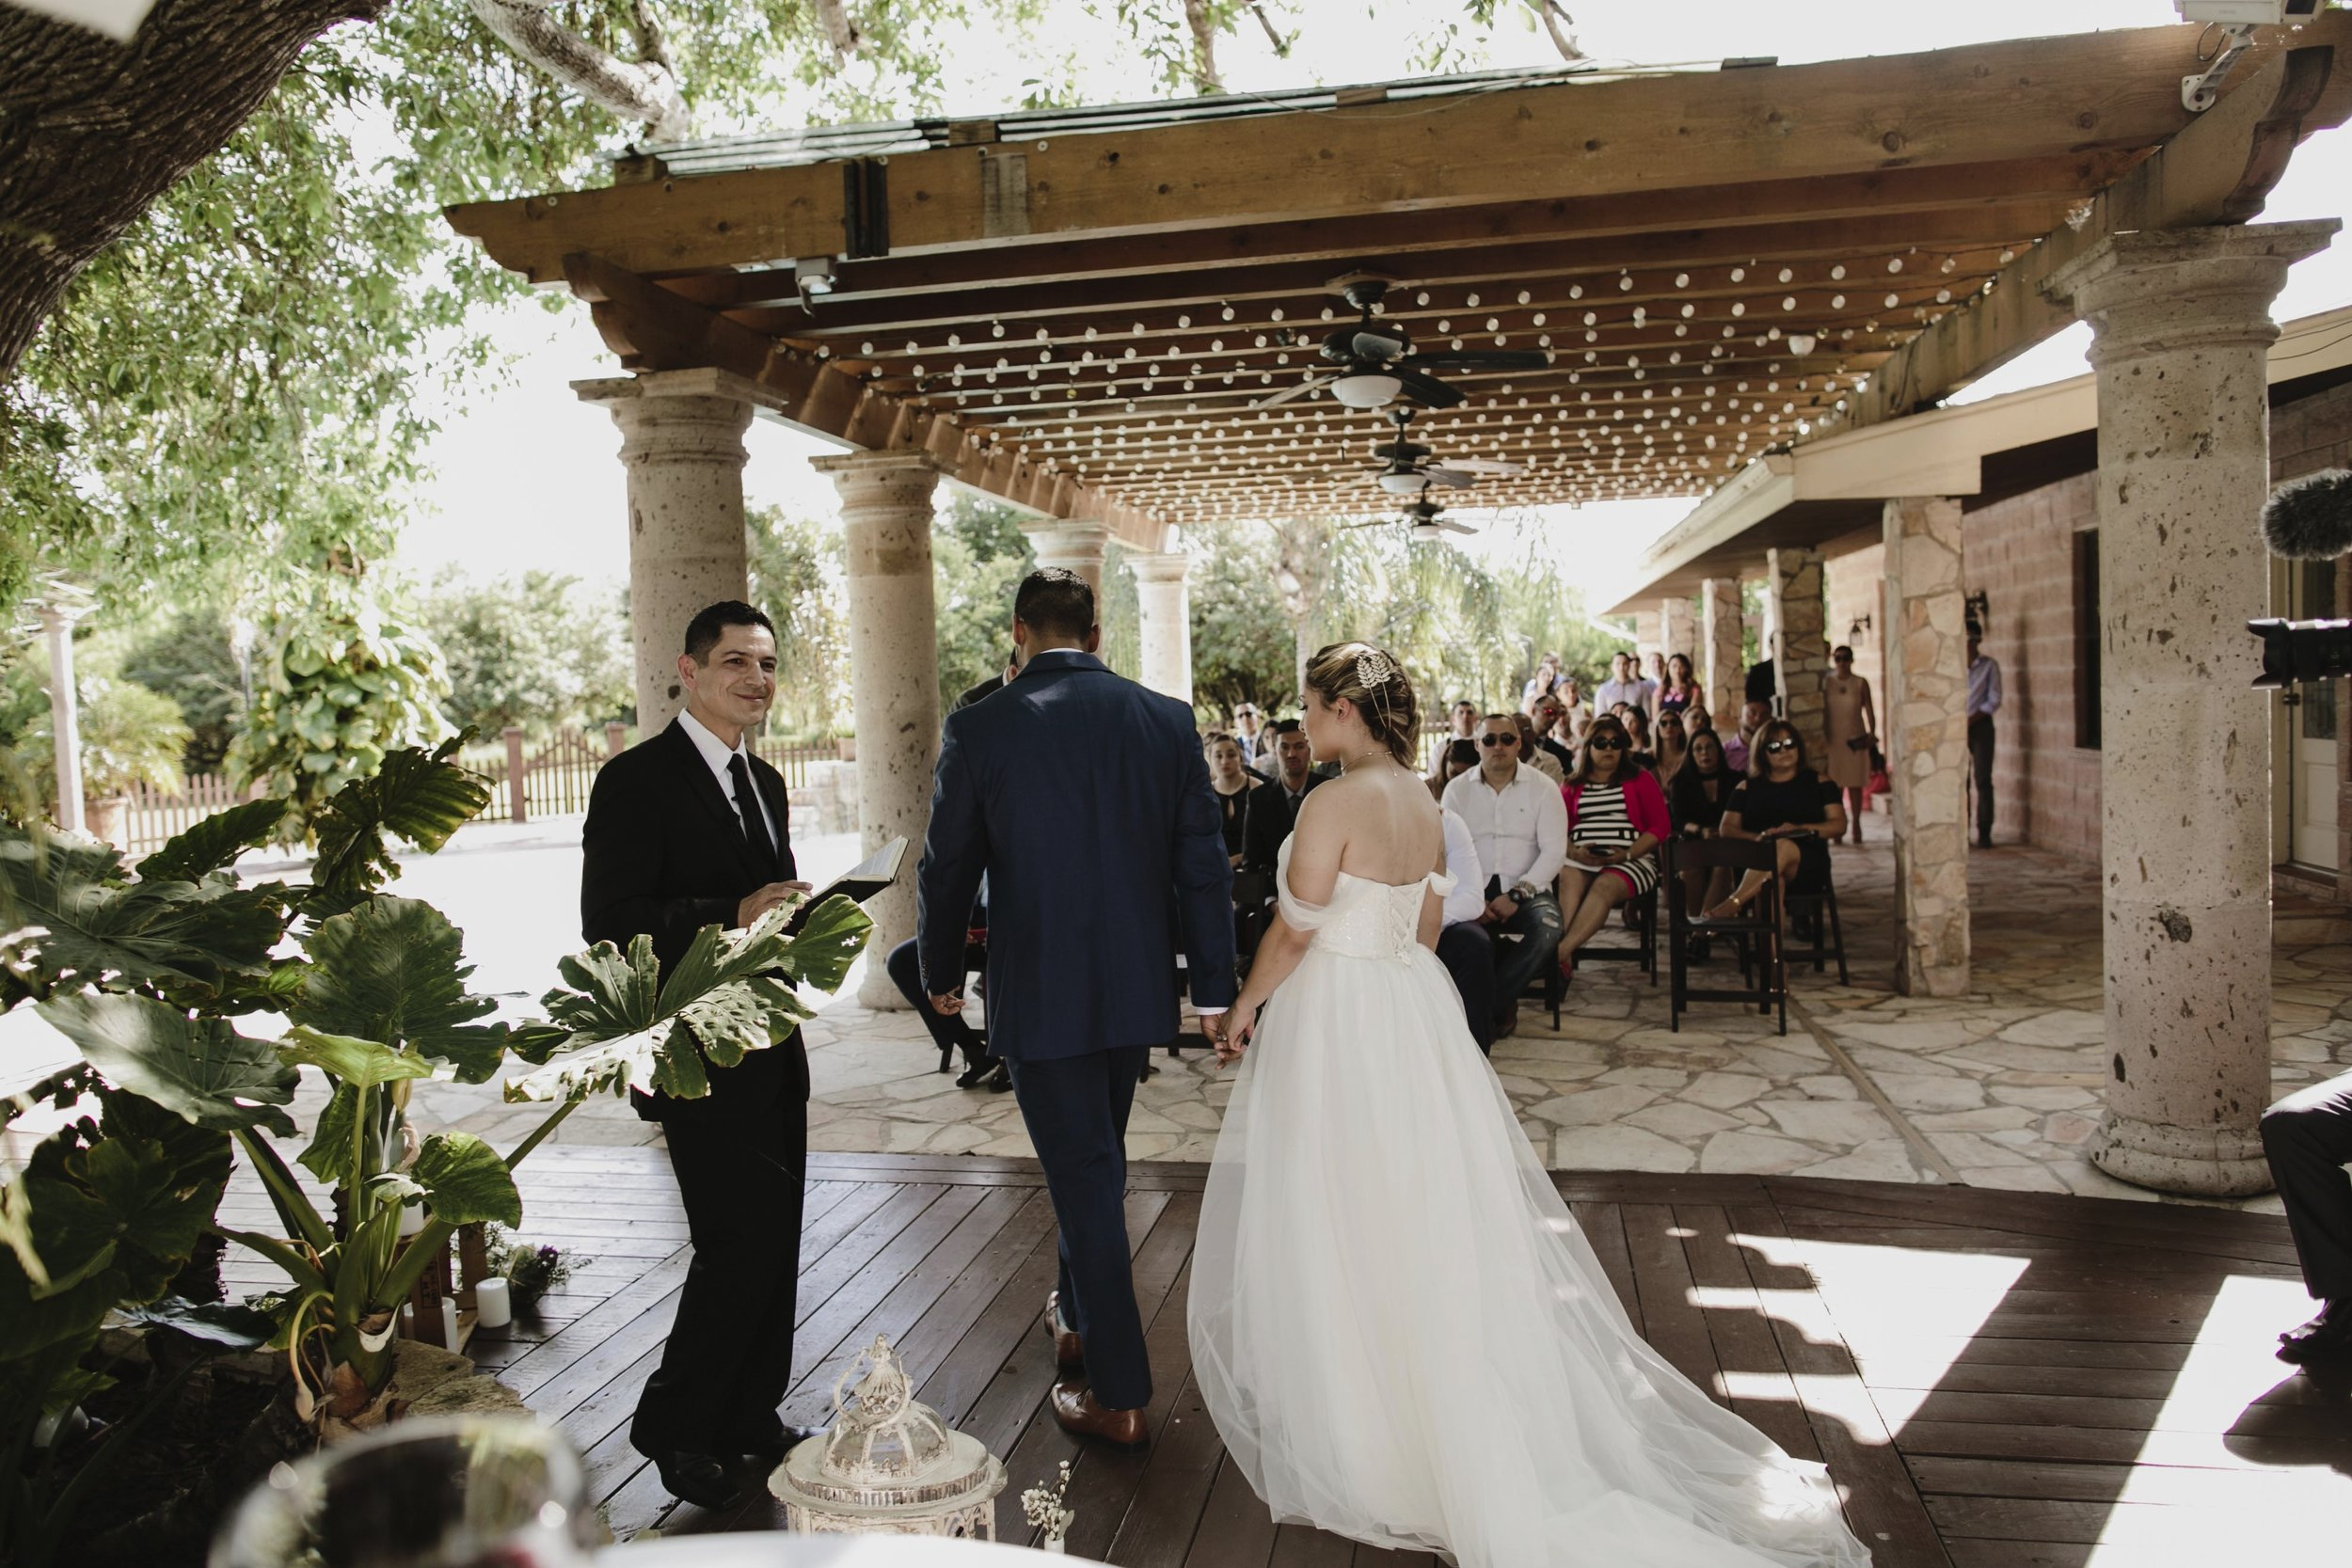 alfonso_flores_destination_wedding_photography_rancho_la_pergola_brownsville_texas36.jpg